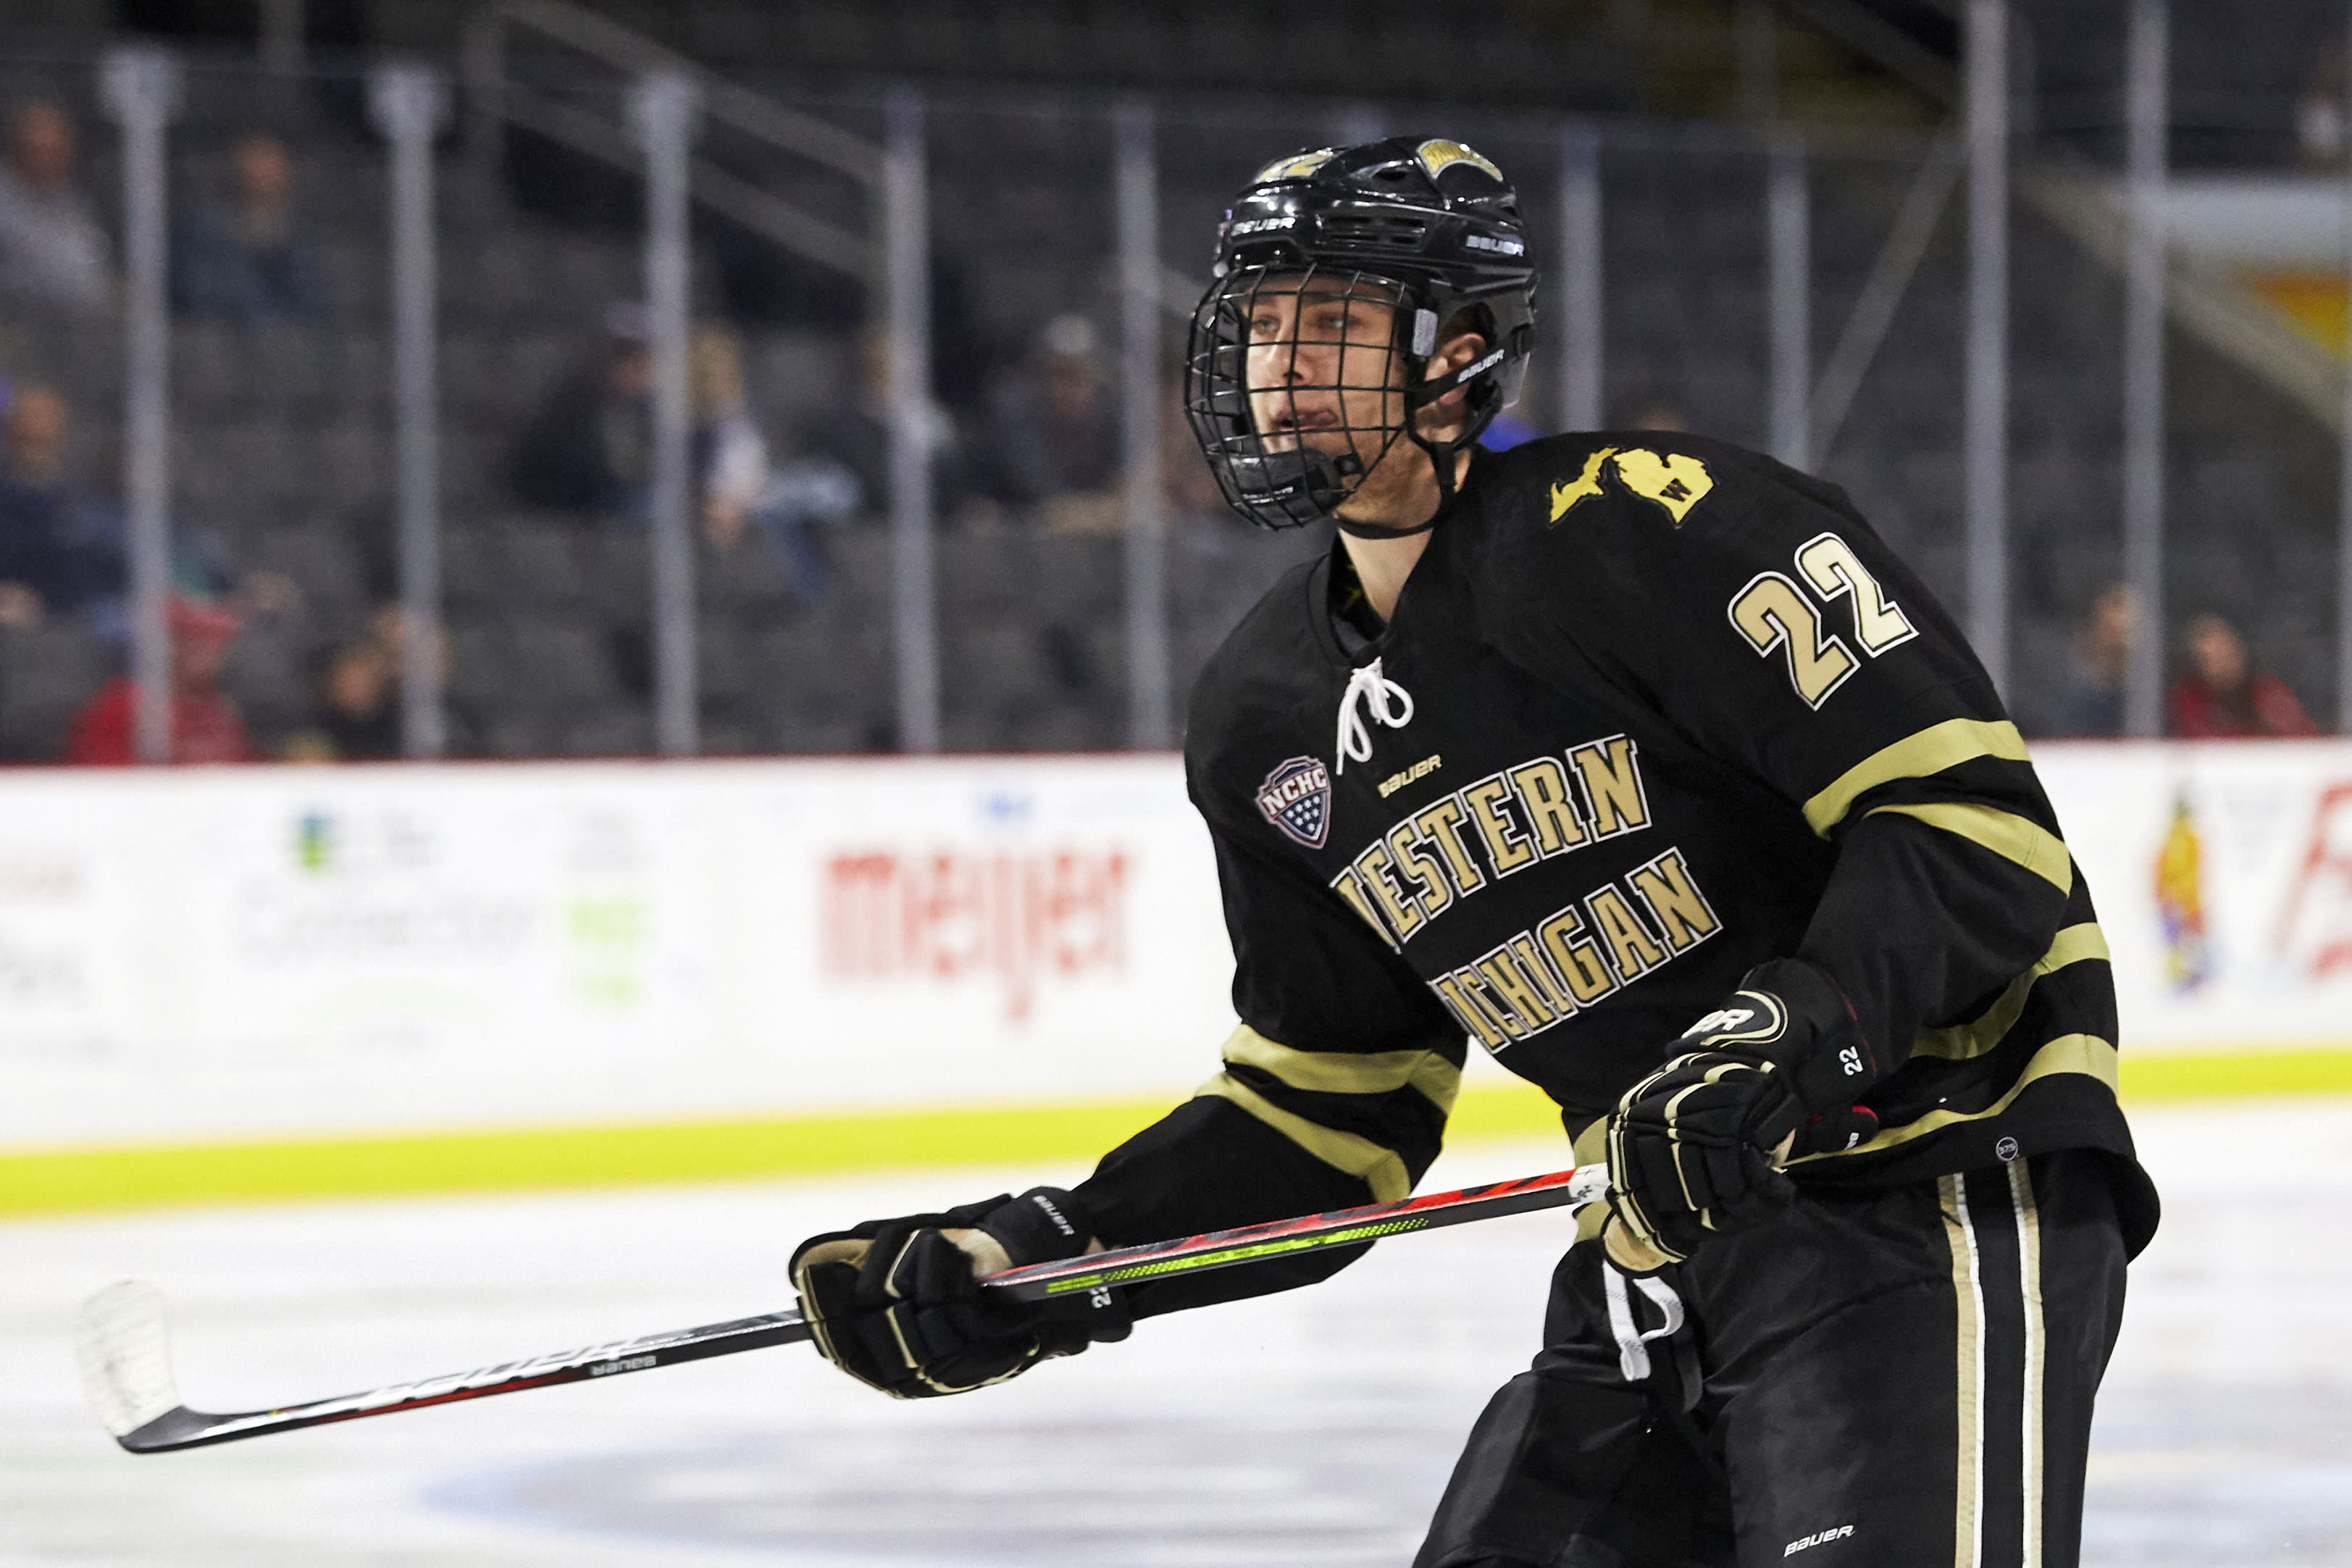 FILE - In this Oct. 11, 2019, file photo, Western Michigan forward Austin Rueschhoff (22) skates Ohio State during an NCAA college hockey game in Toledo, Ohio. Rueschhoff signed with the New York Rangers recently. (AP Photo/Rick Osentoski, File)